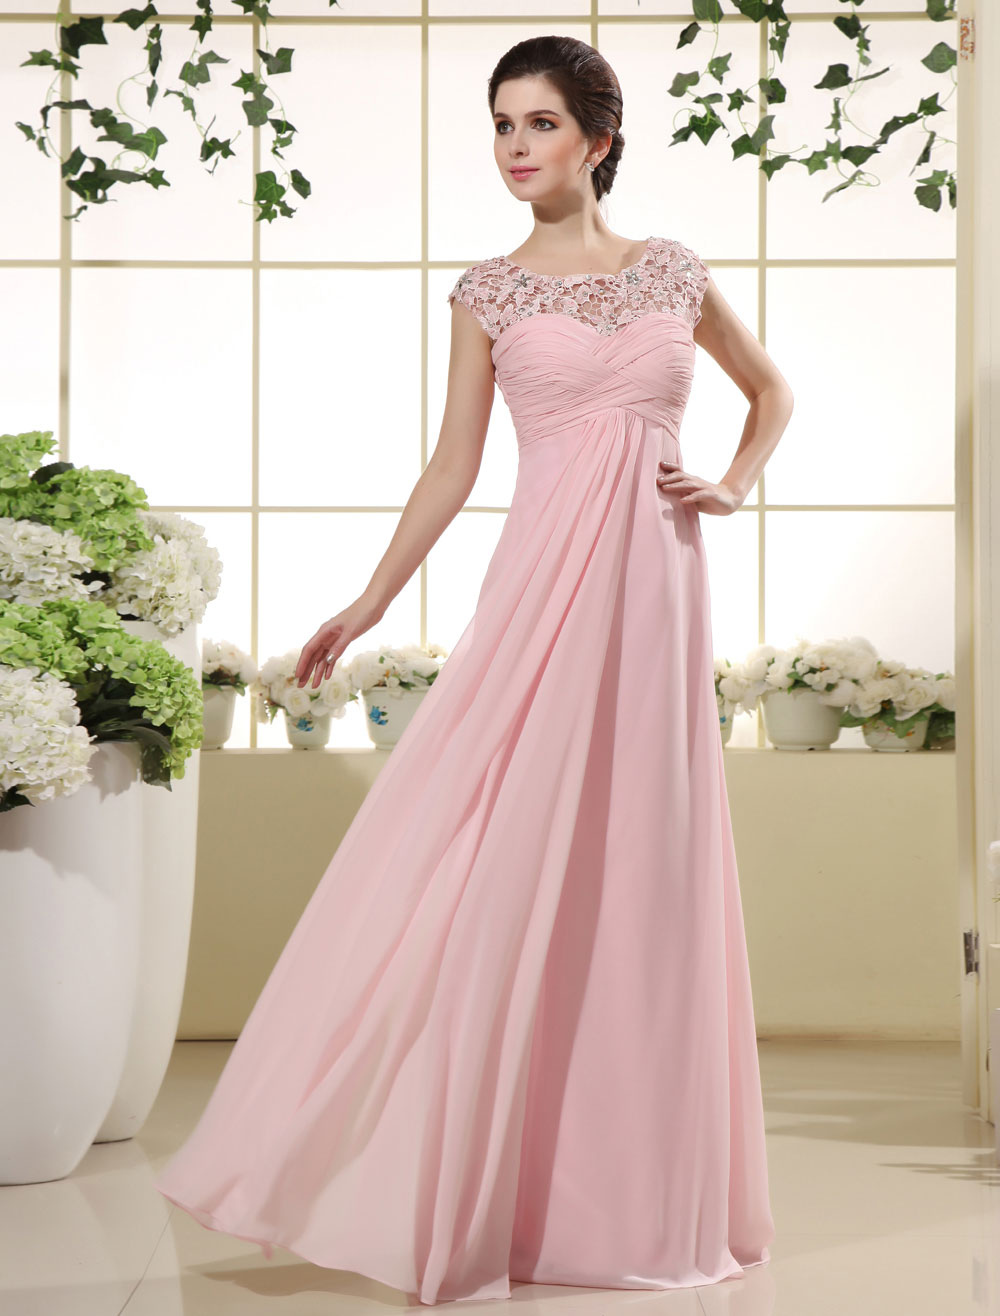 Pink Prom Dresses 2020 Long Lace Illusion Chiffon Evening Dress Ruched Beading Floor Length Party Dress Wedding Guest Dress Milanoo Wedding Guest